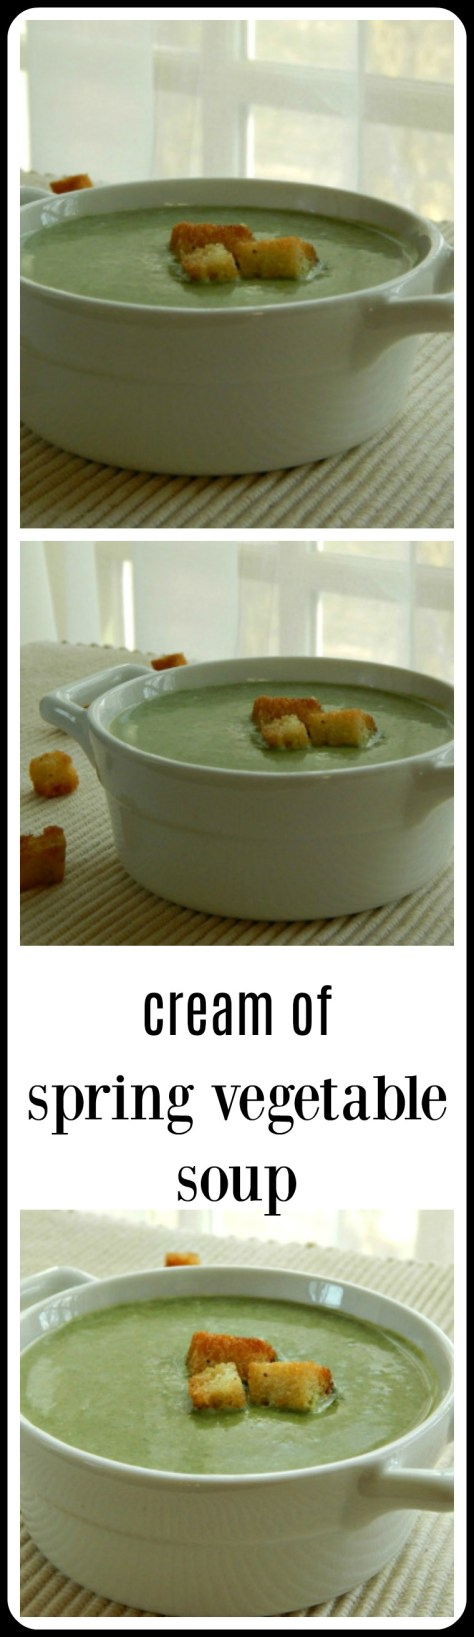 Cream of Spring Vegetable Soup or Potage. So much better than it sounds!